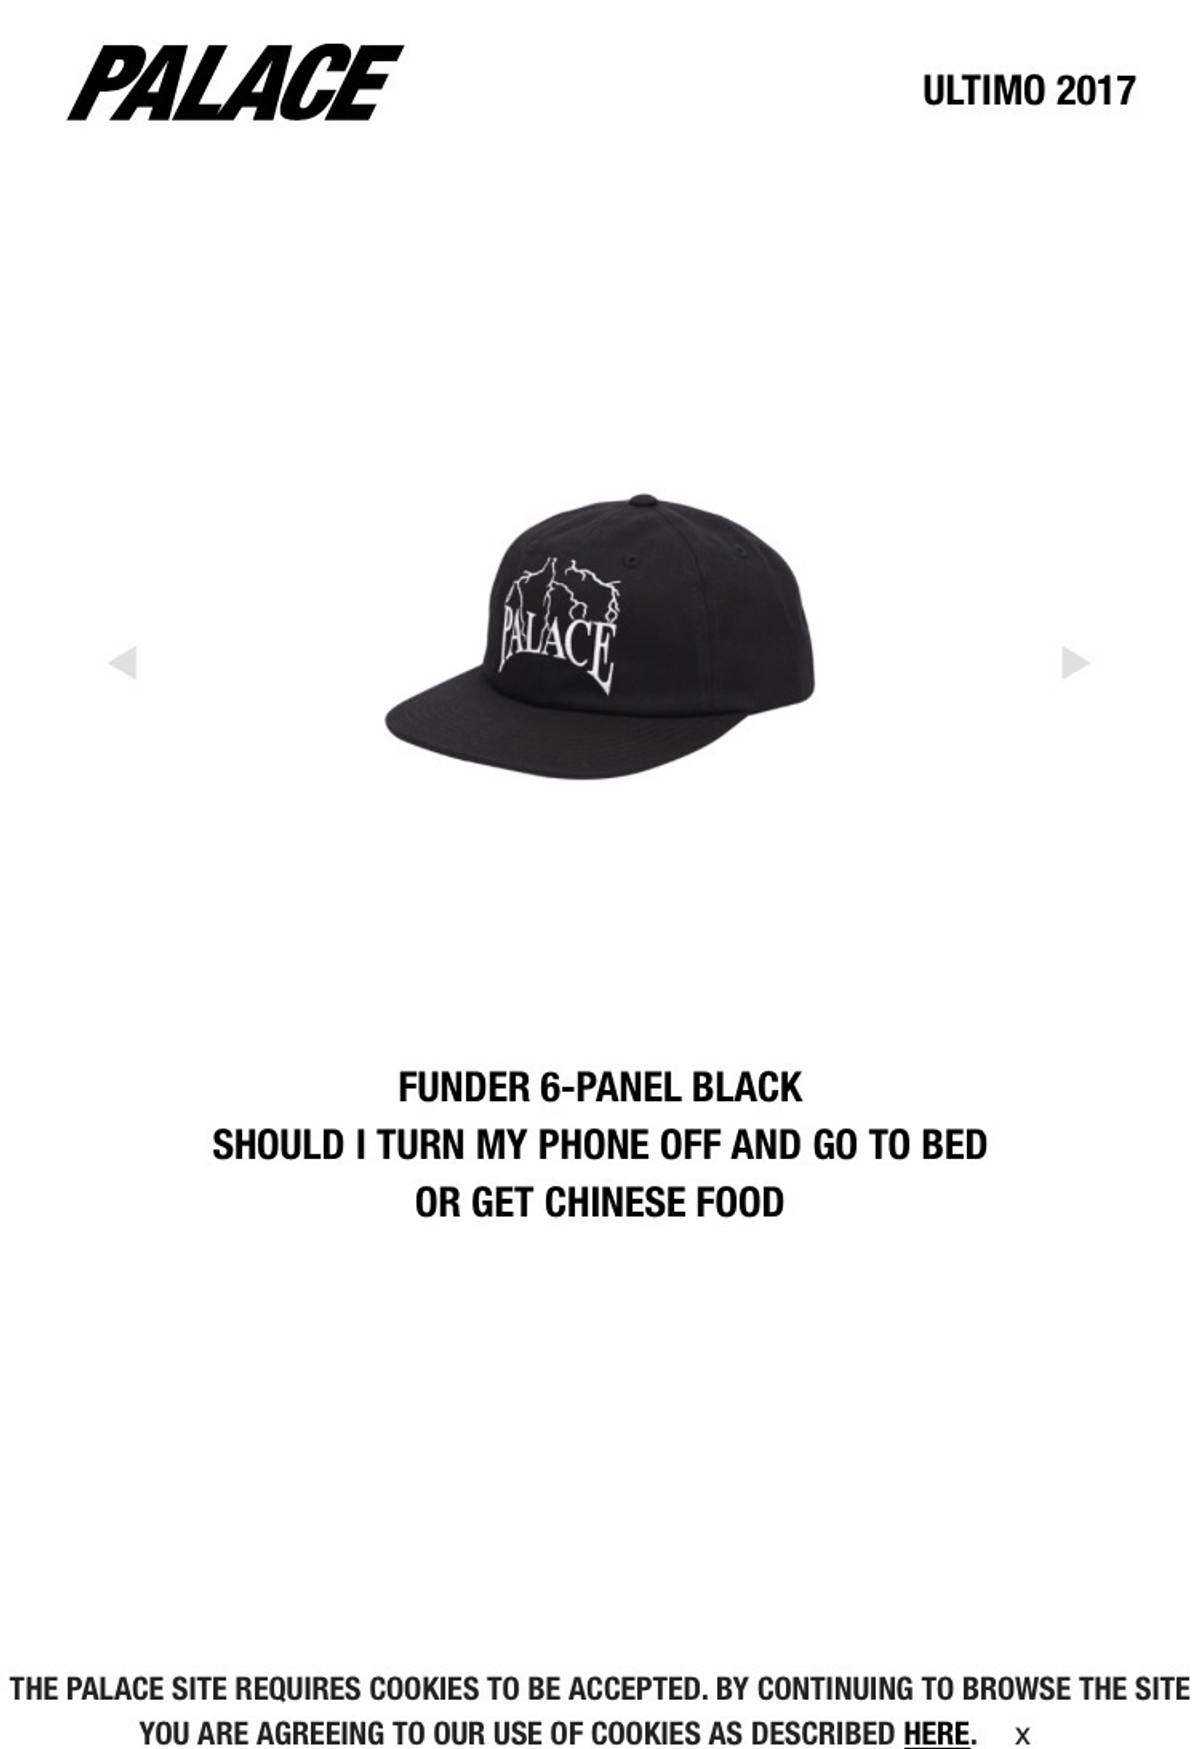 0fa88ed702e Palace Funder 6-Panel Black Size one size - Hats for Sale - Grailed